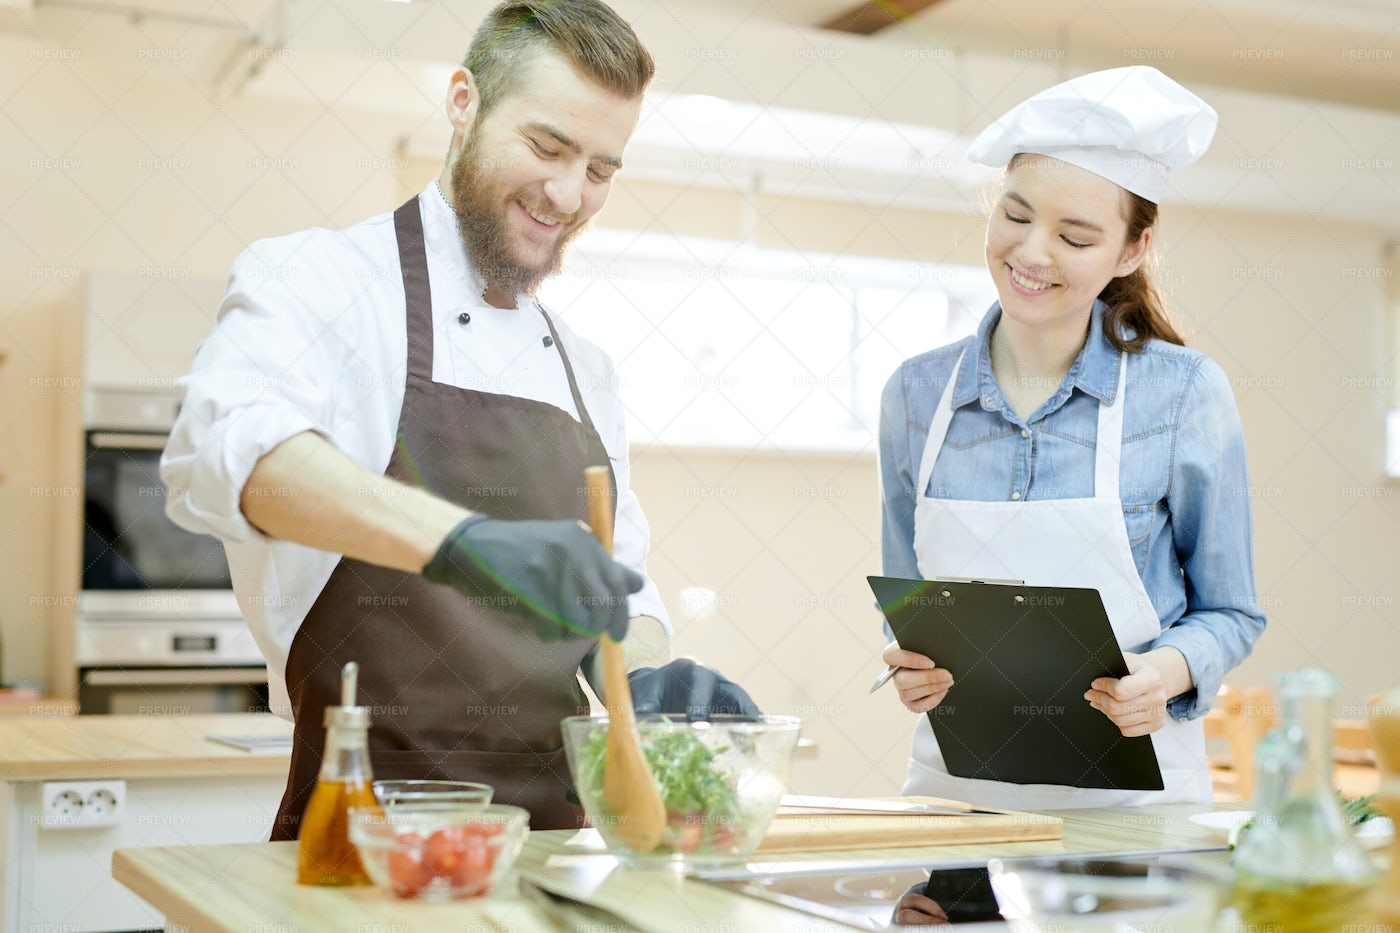 Smiling Chef Working In Restaurant: Stock Photos